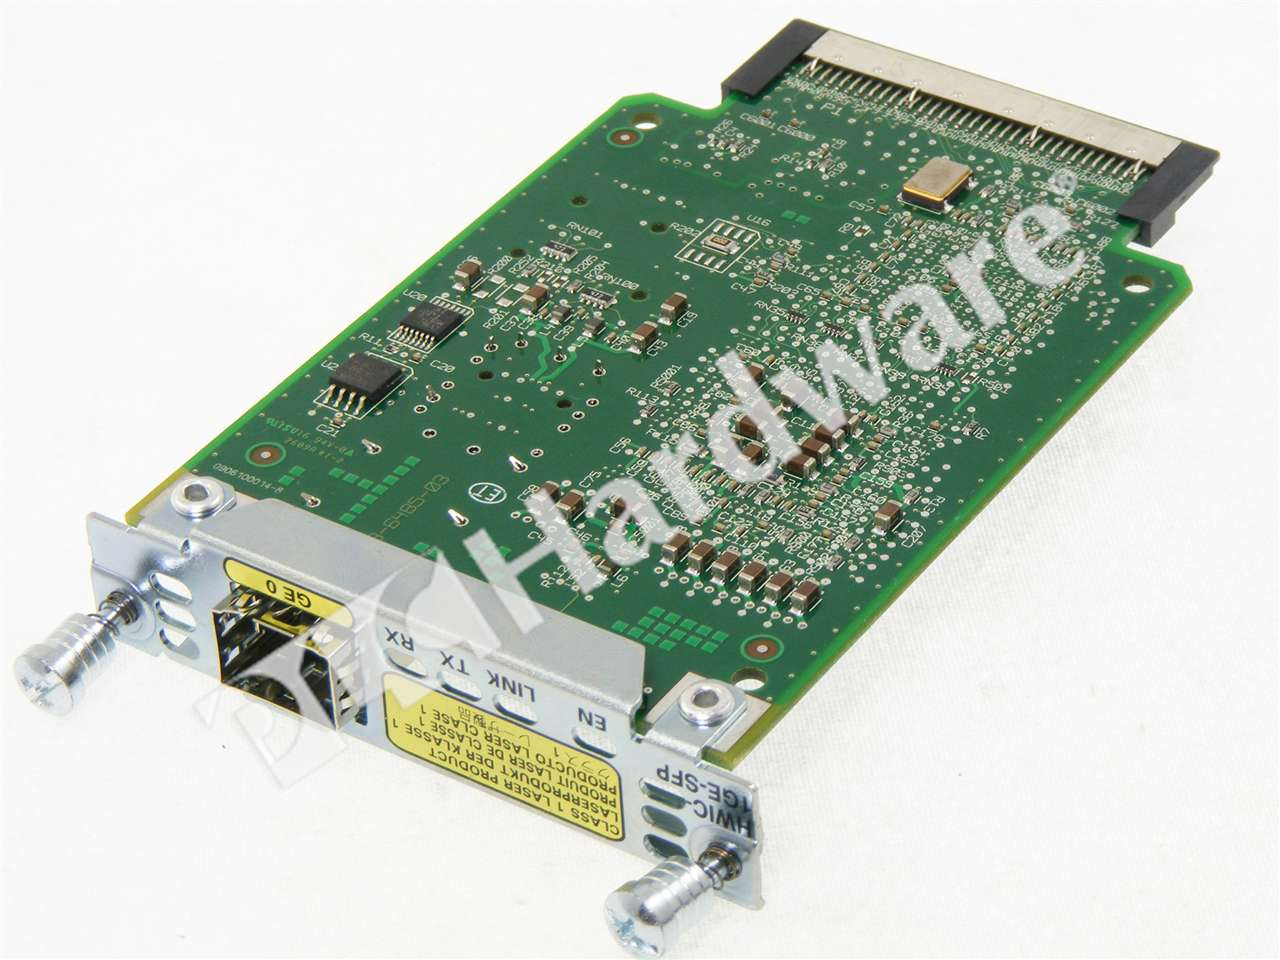 Plc Hardware Cisco Hwic 1ge Sfp Refurbished Factory Sealed Intervlan Routing With Catalyst 3750 3560 3550 Series Switches 5